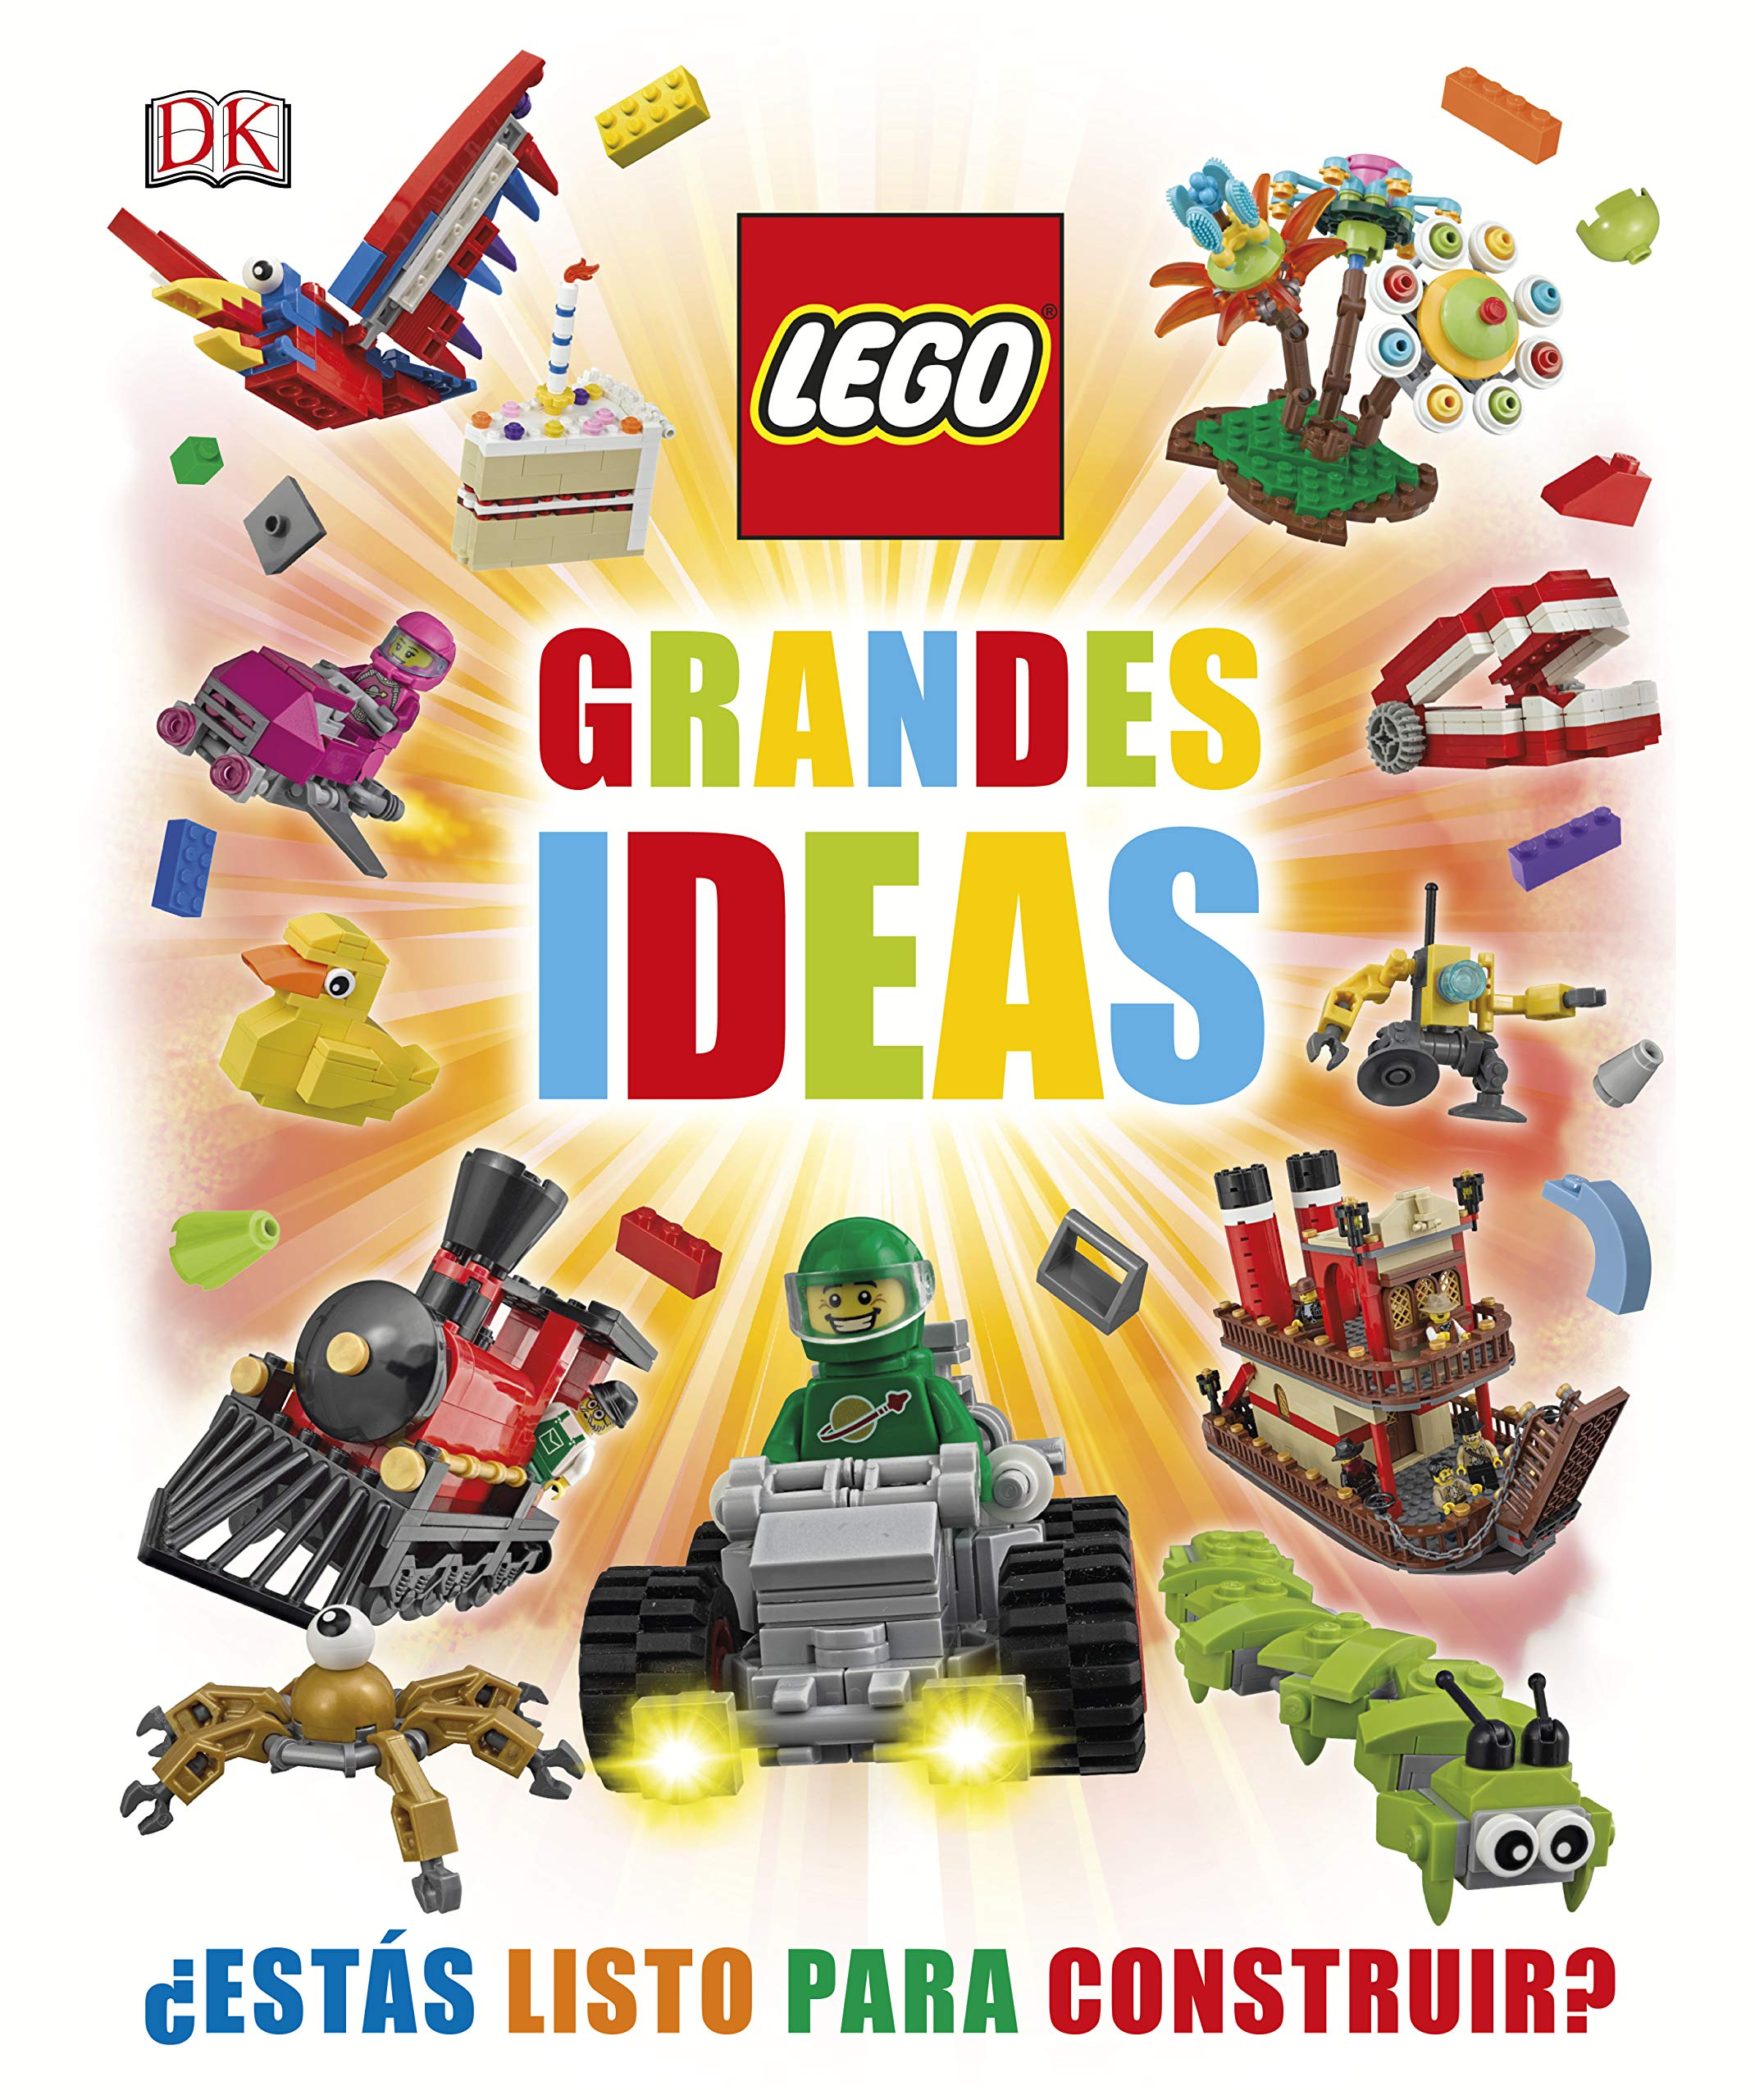 LEGO. Grandes ideas: Varios autores: 9780241249185: Amazon.com: Books